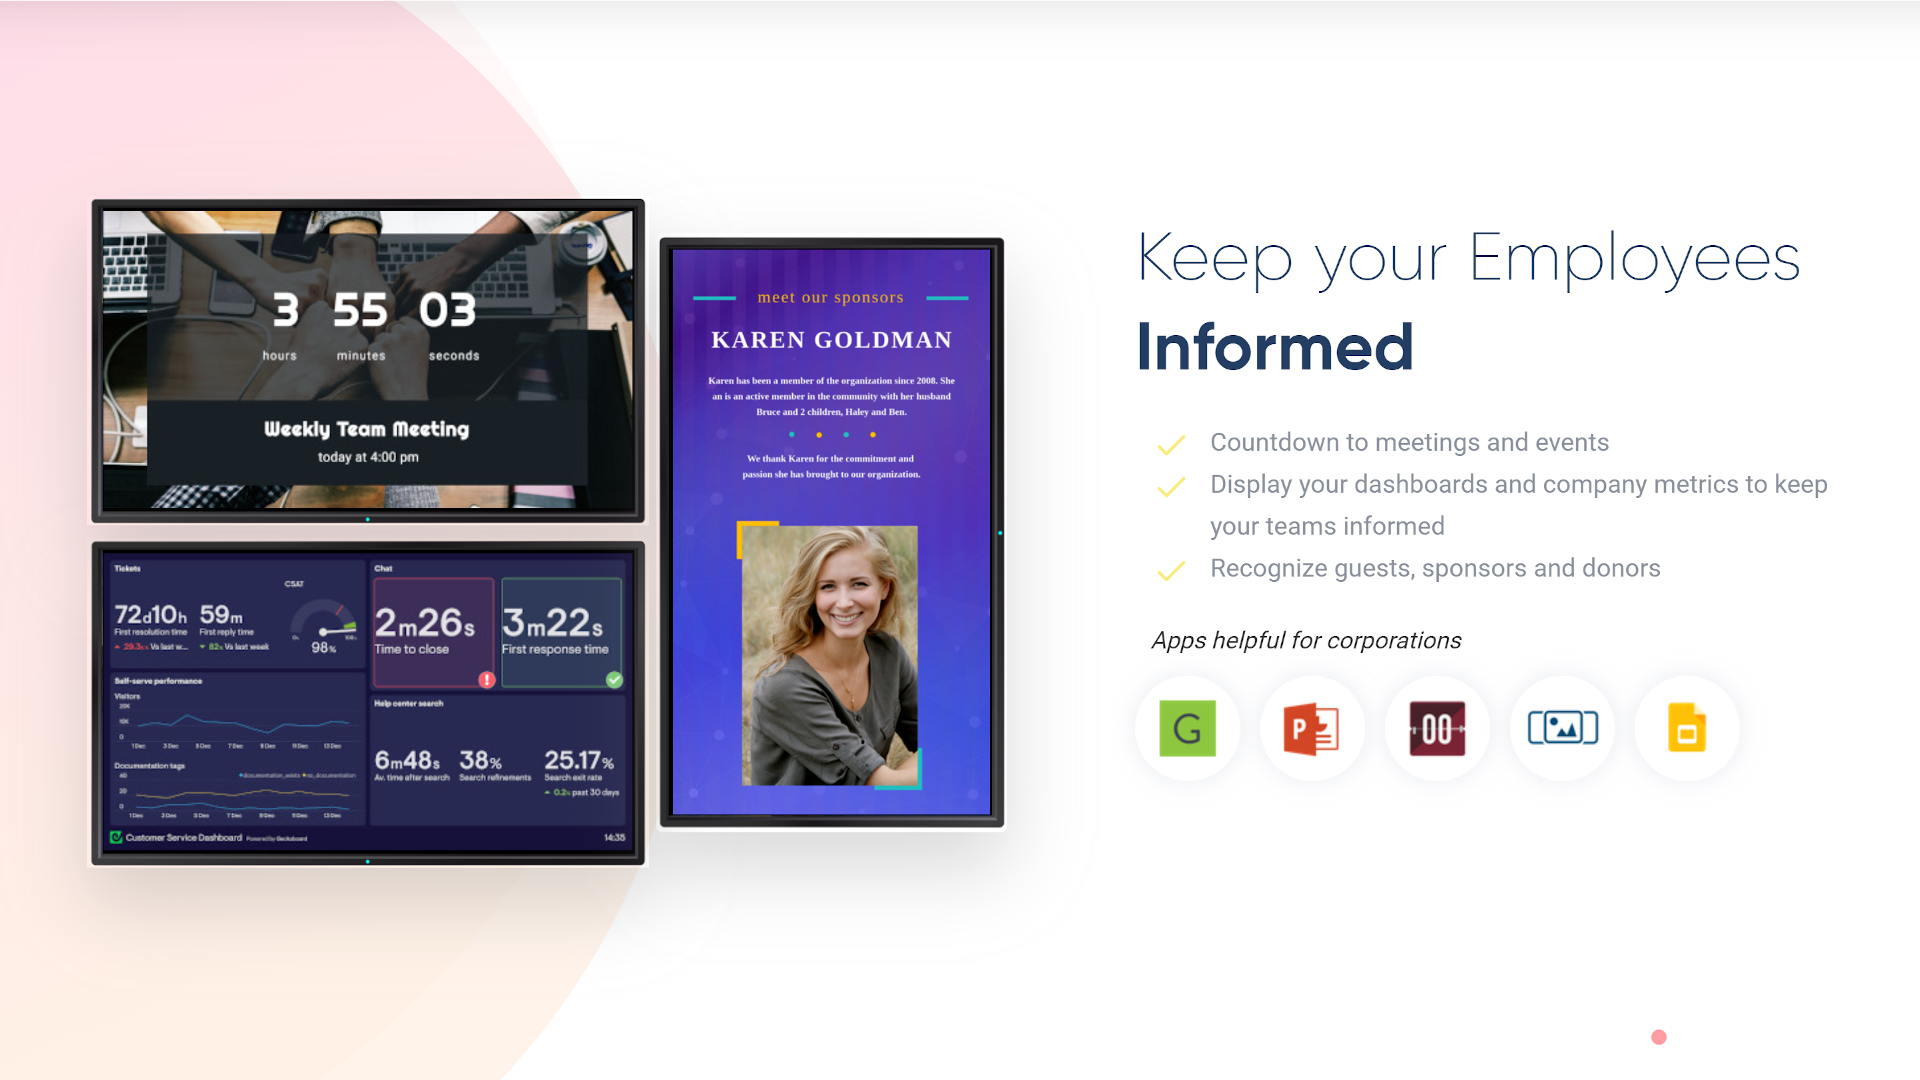 Keep employees, and customers informed with up to date information and smart content.